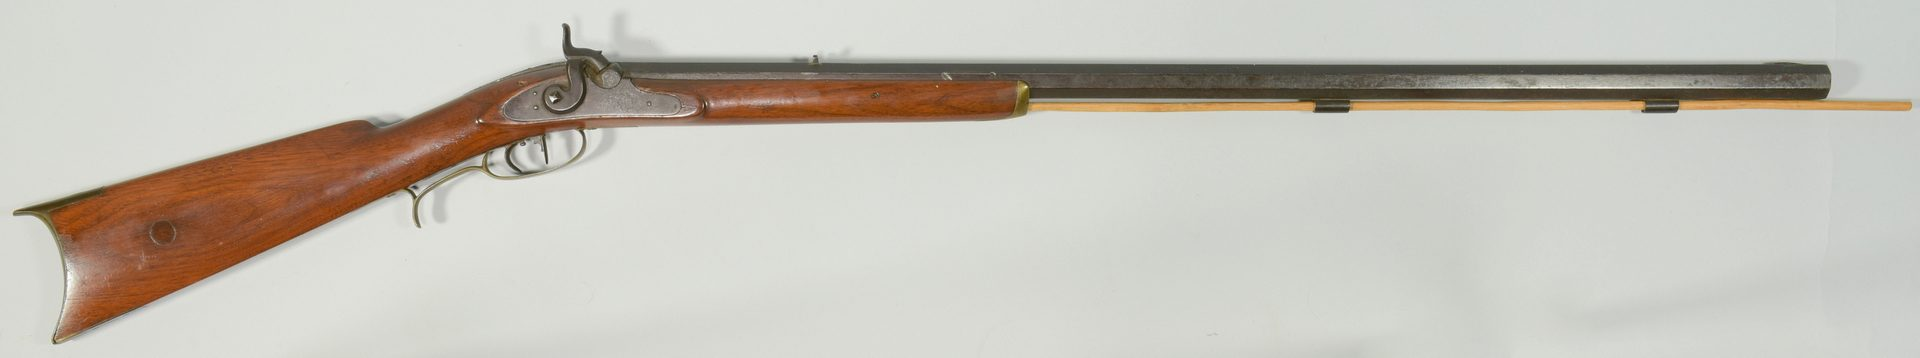 Lot 304: Halfstock Percussion Long Rifle, Tennessee